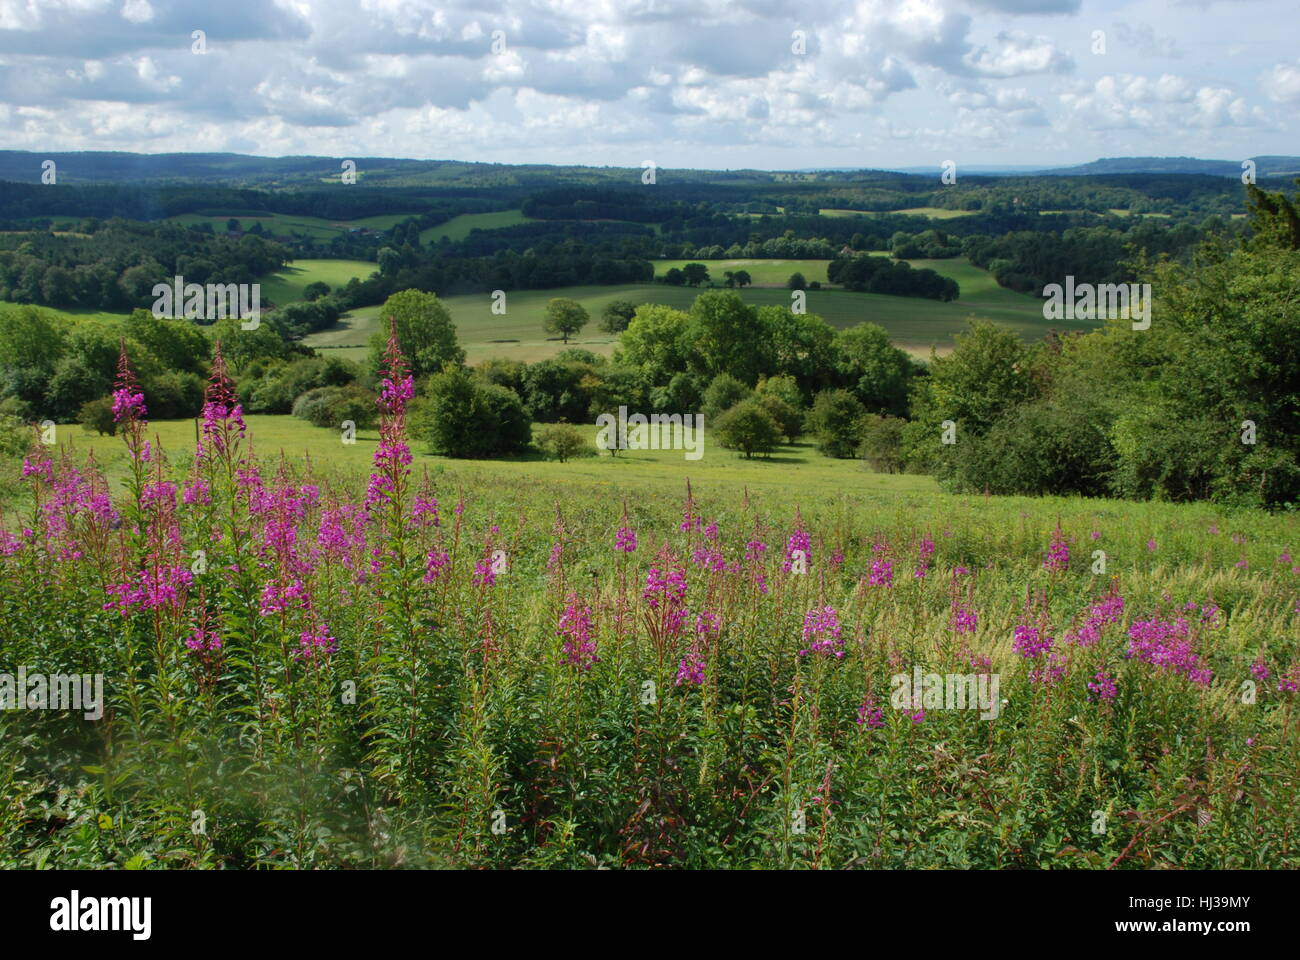 Landscape view of the Surrey Hills Area of Outstanding Natural Beauty in midsummer with colourful rosebay willowherb - Stock Image